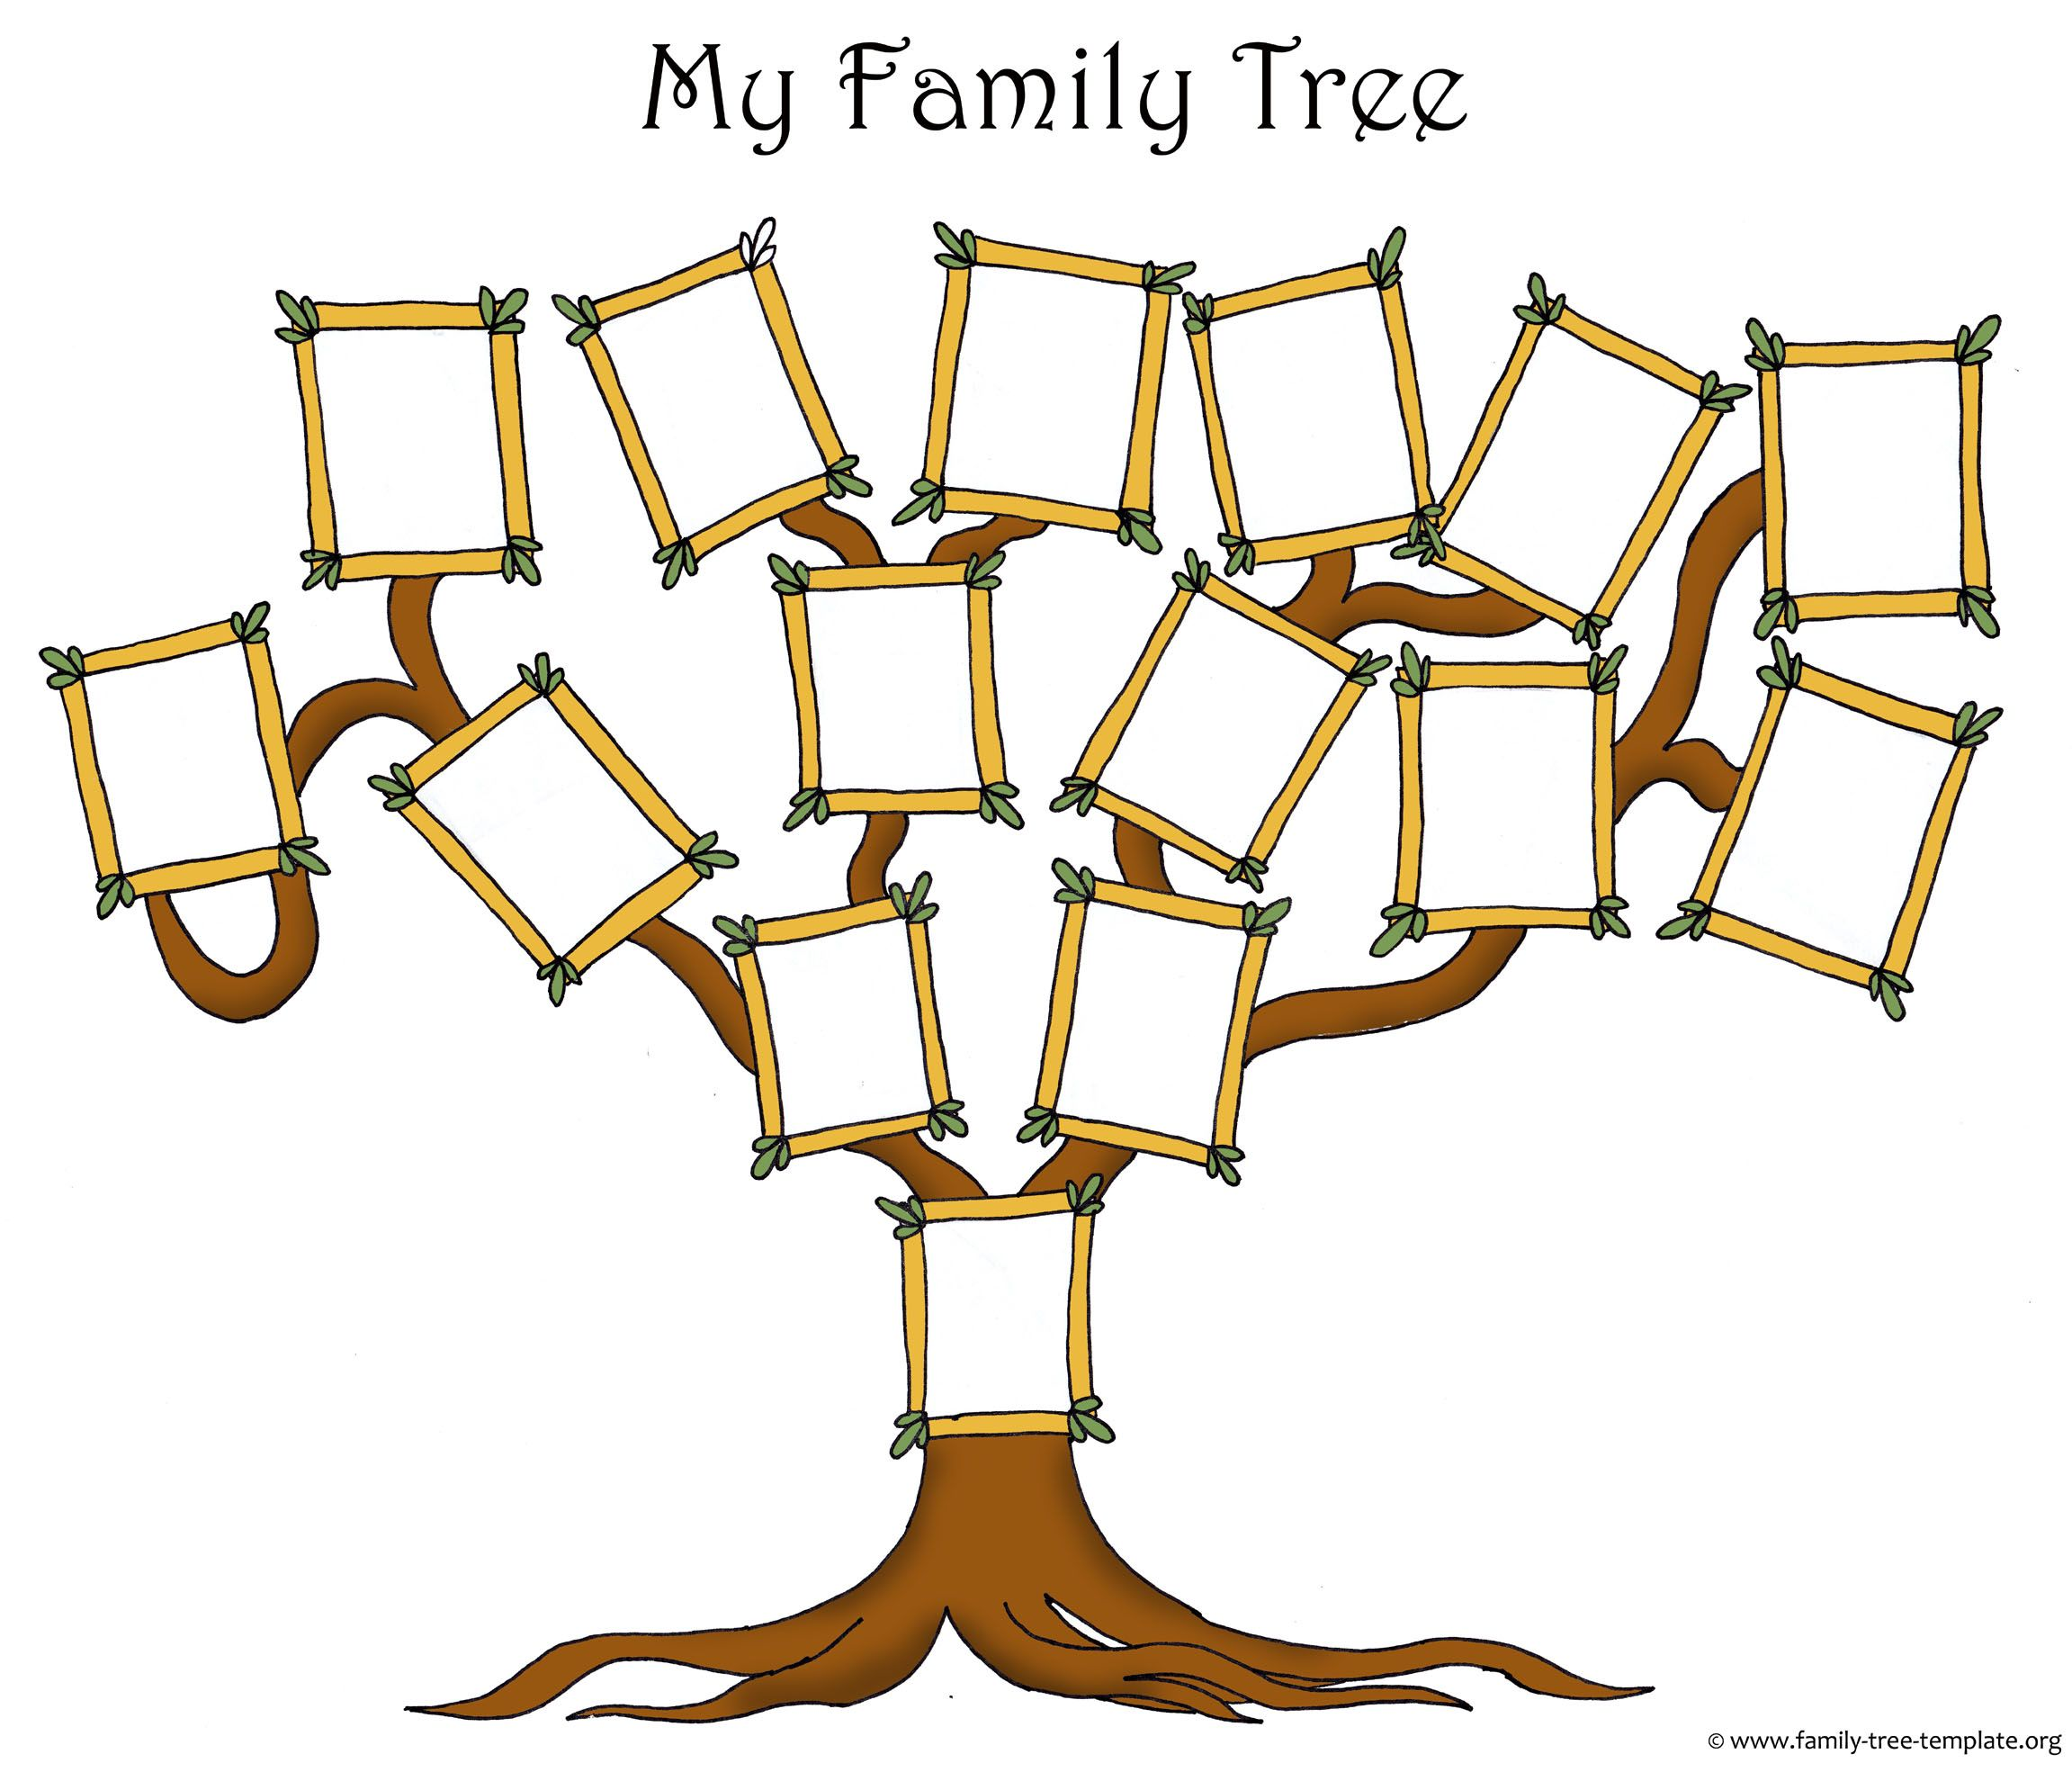 Original Free Family Tree Template With Picure Frames For